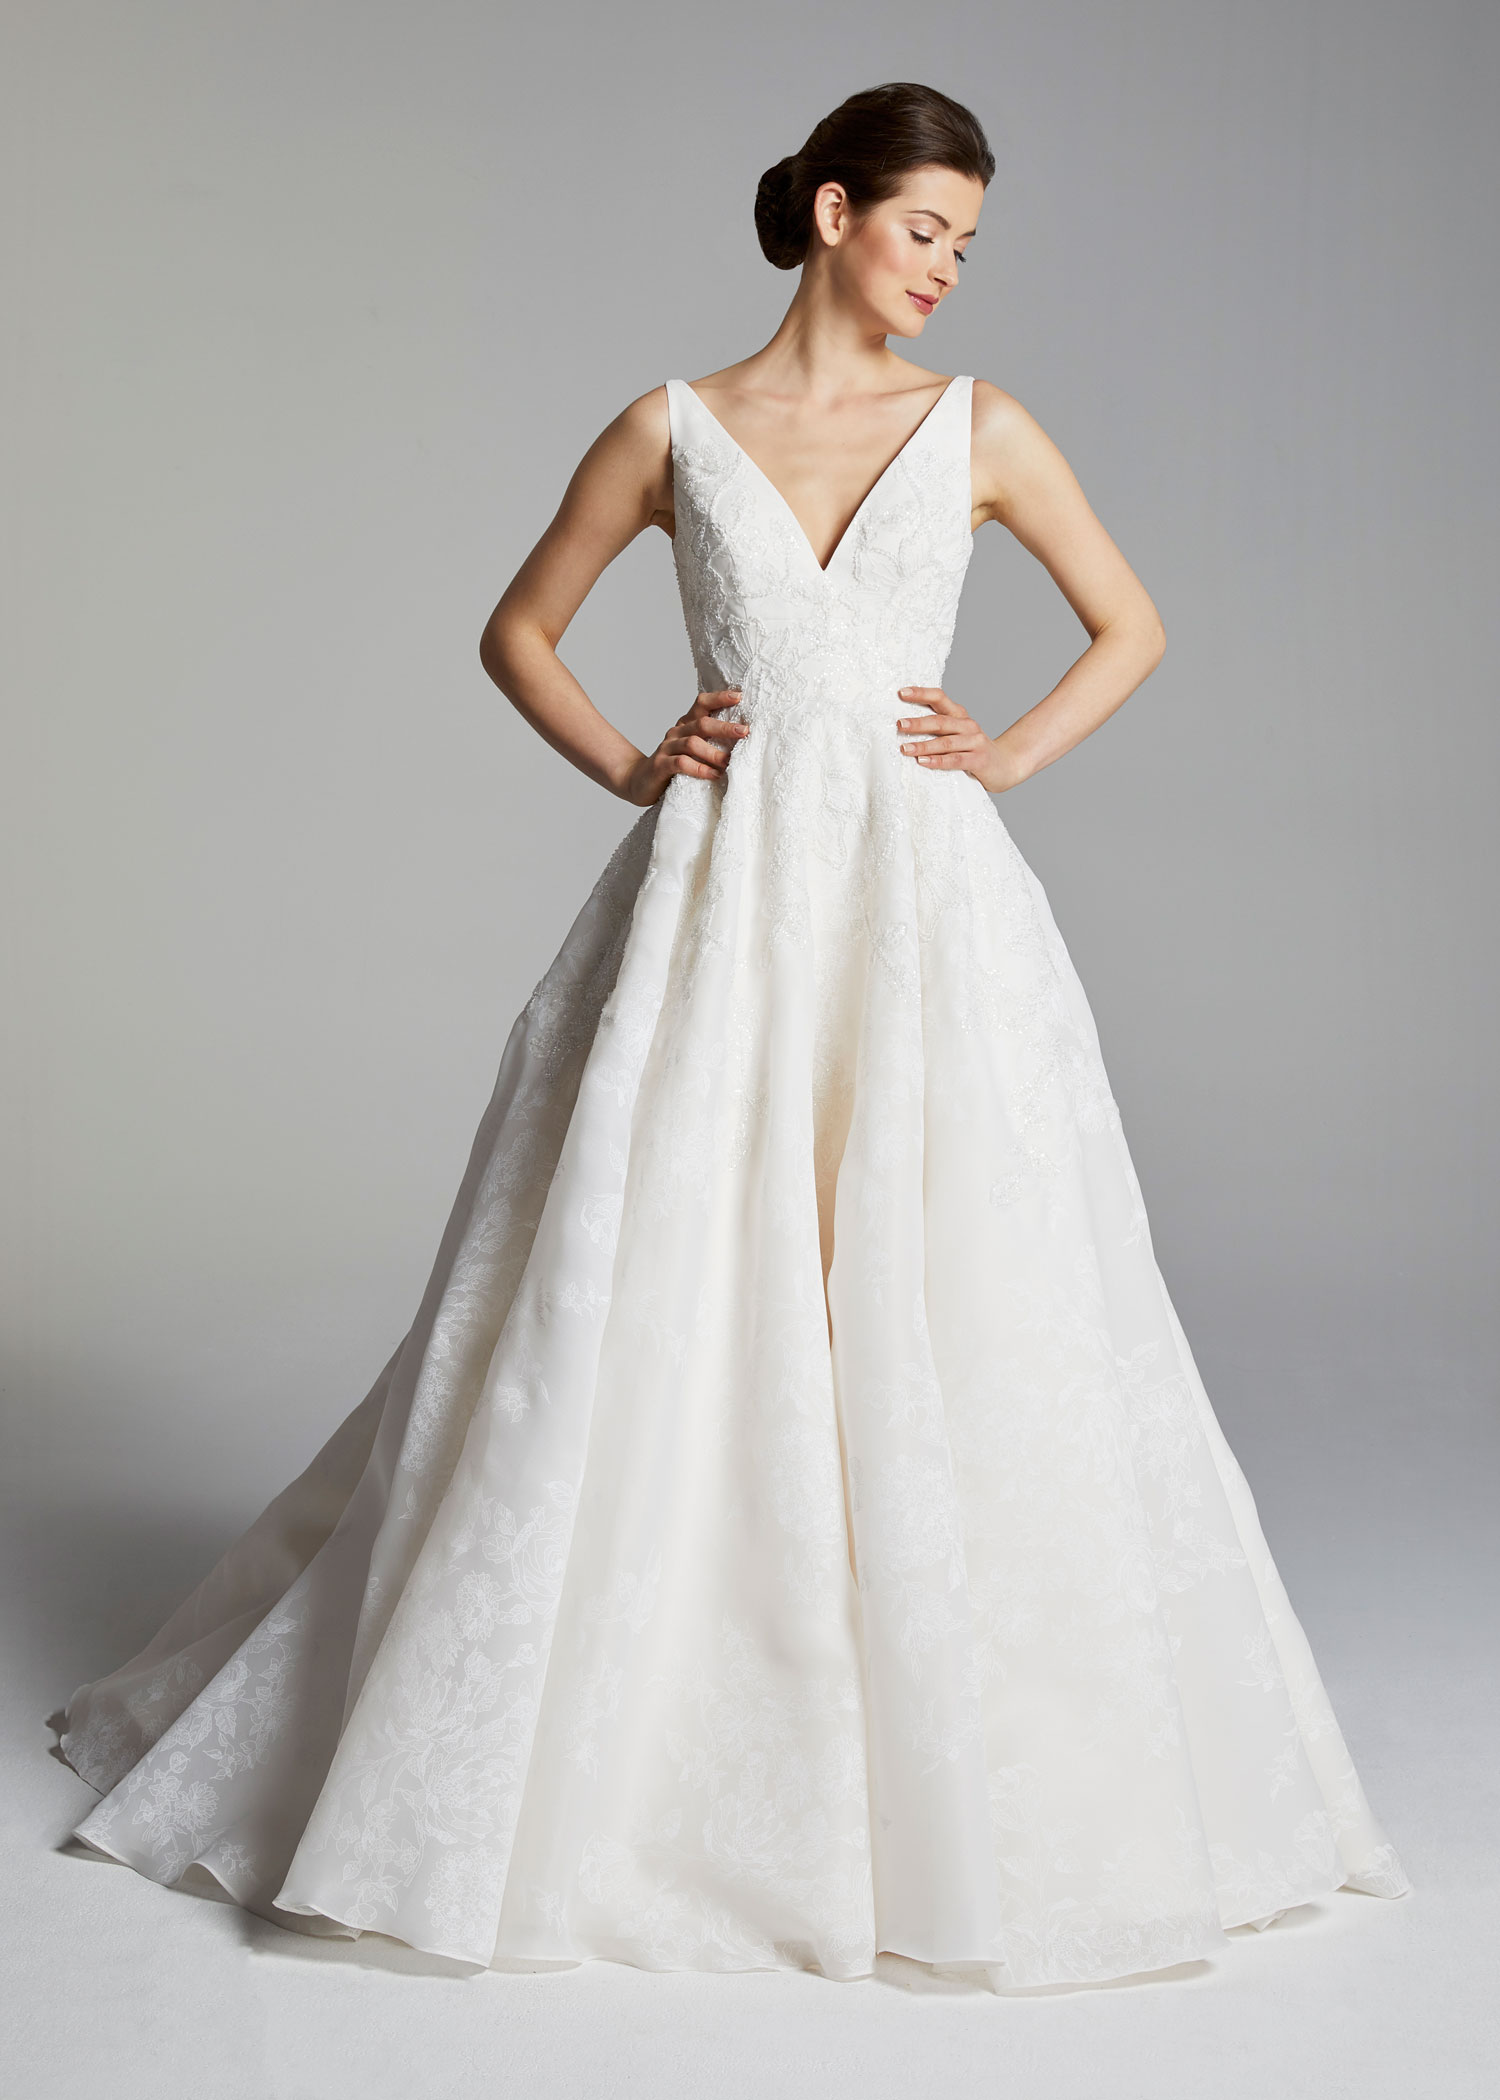 Anne Barge v neck a line ball gown royal wedding inspired dress bridal gown